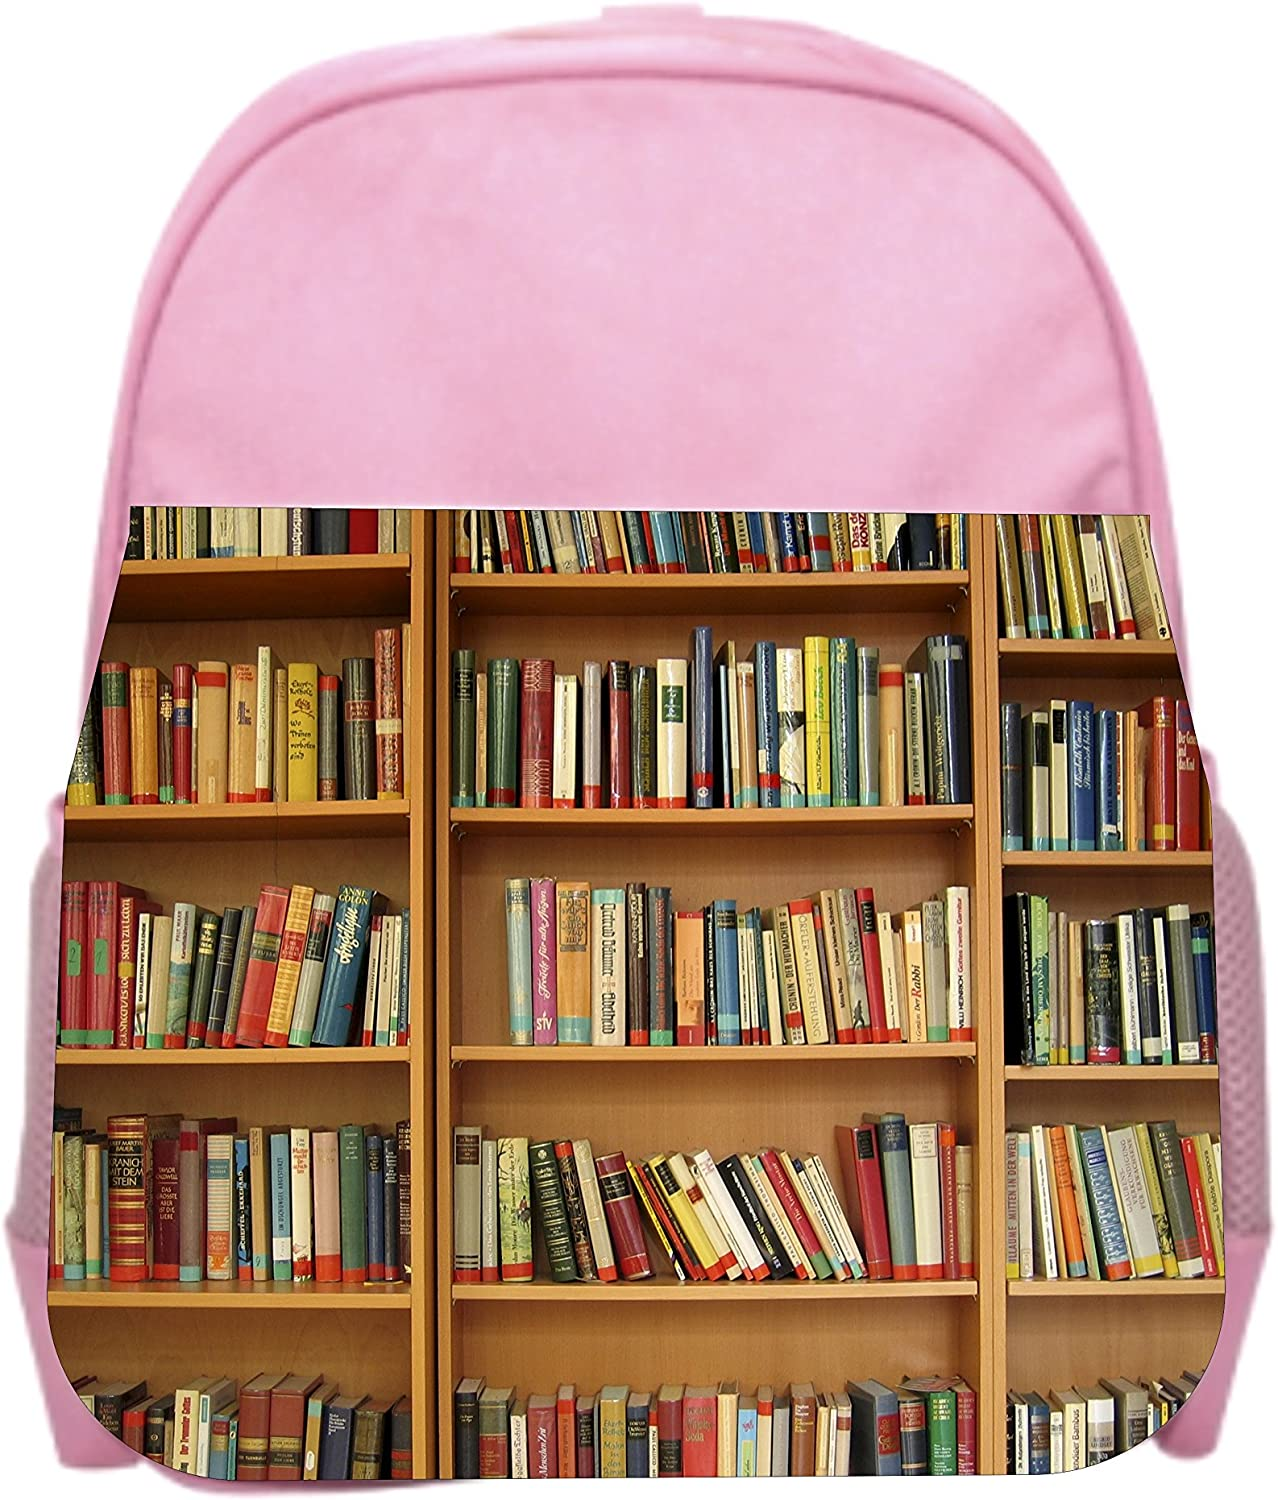 Library Girls Pink Preschool Toddler Childrens Backpack /& Lunch Box Set